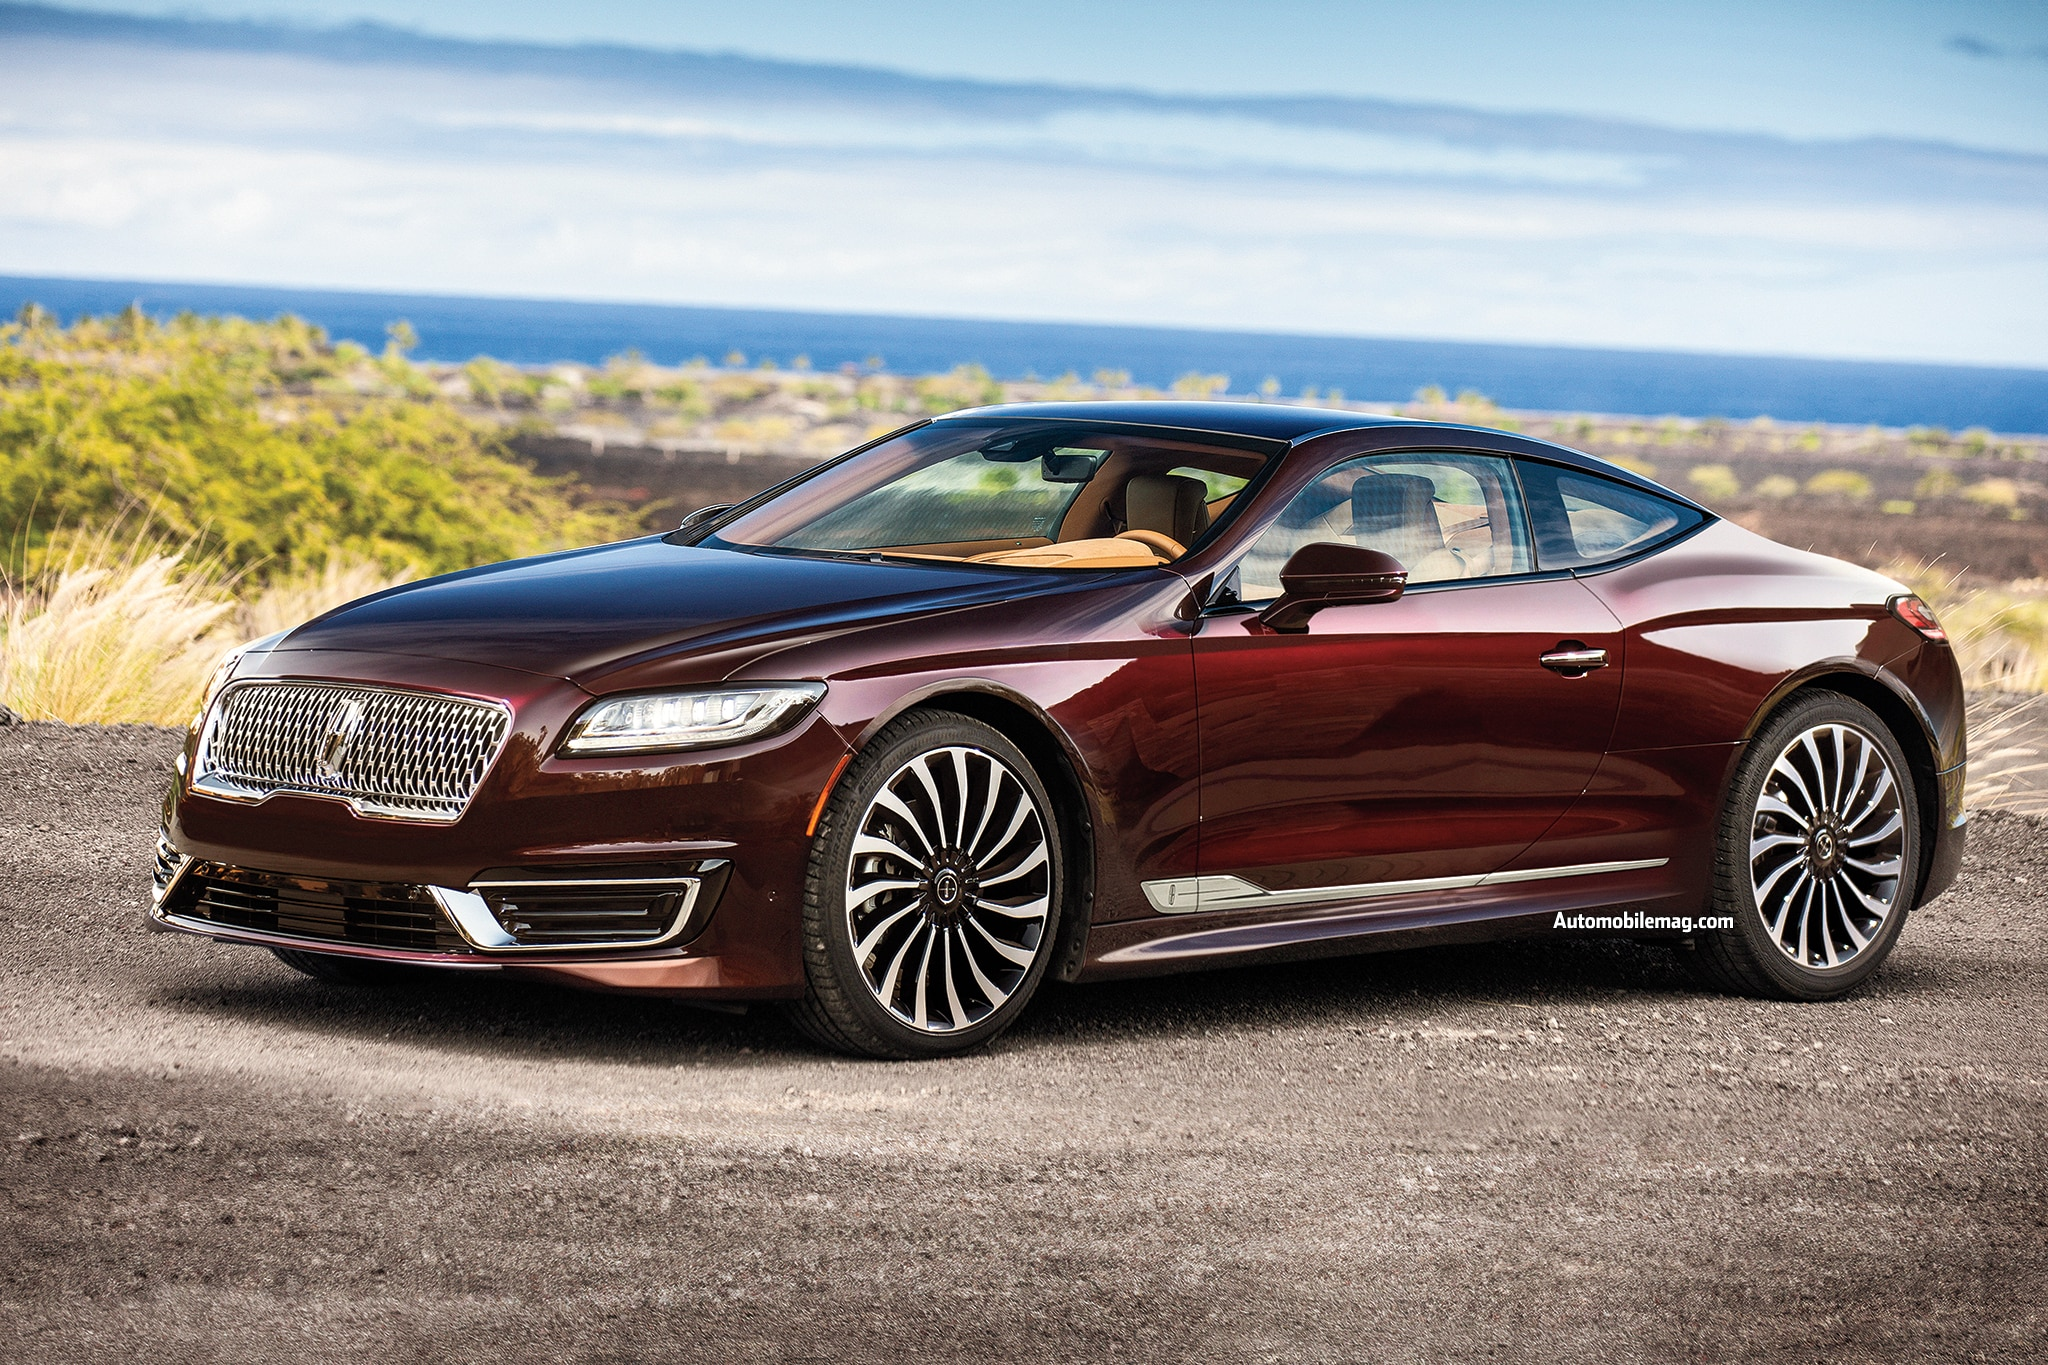 54 All New 2020 Lincoln Continental Specs